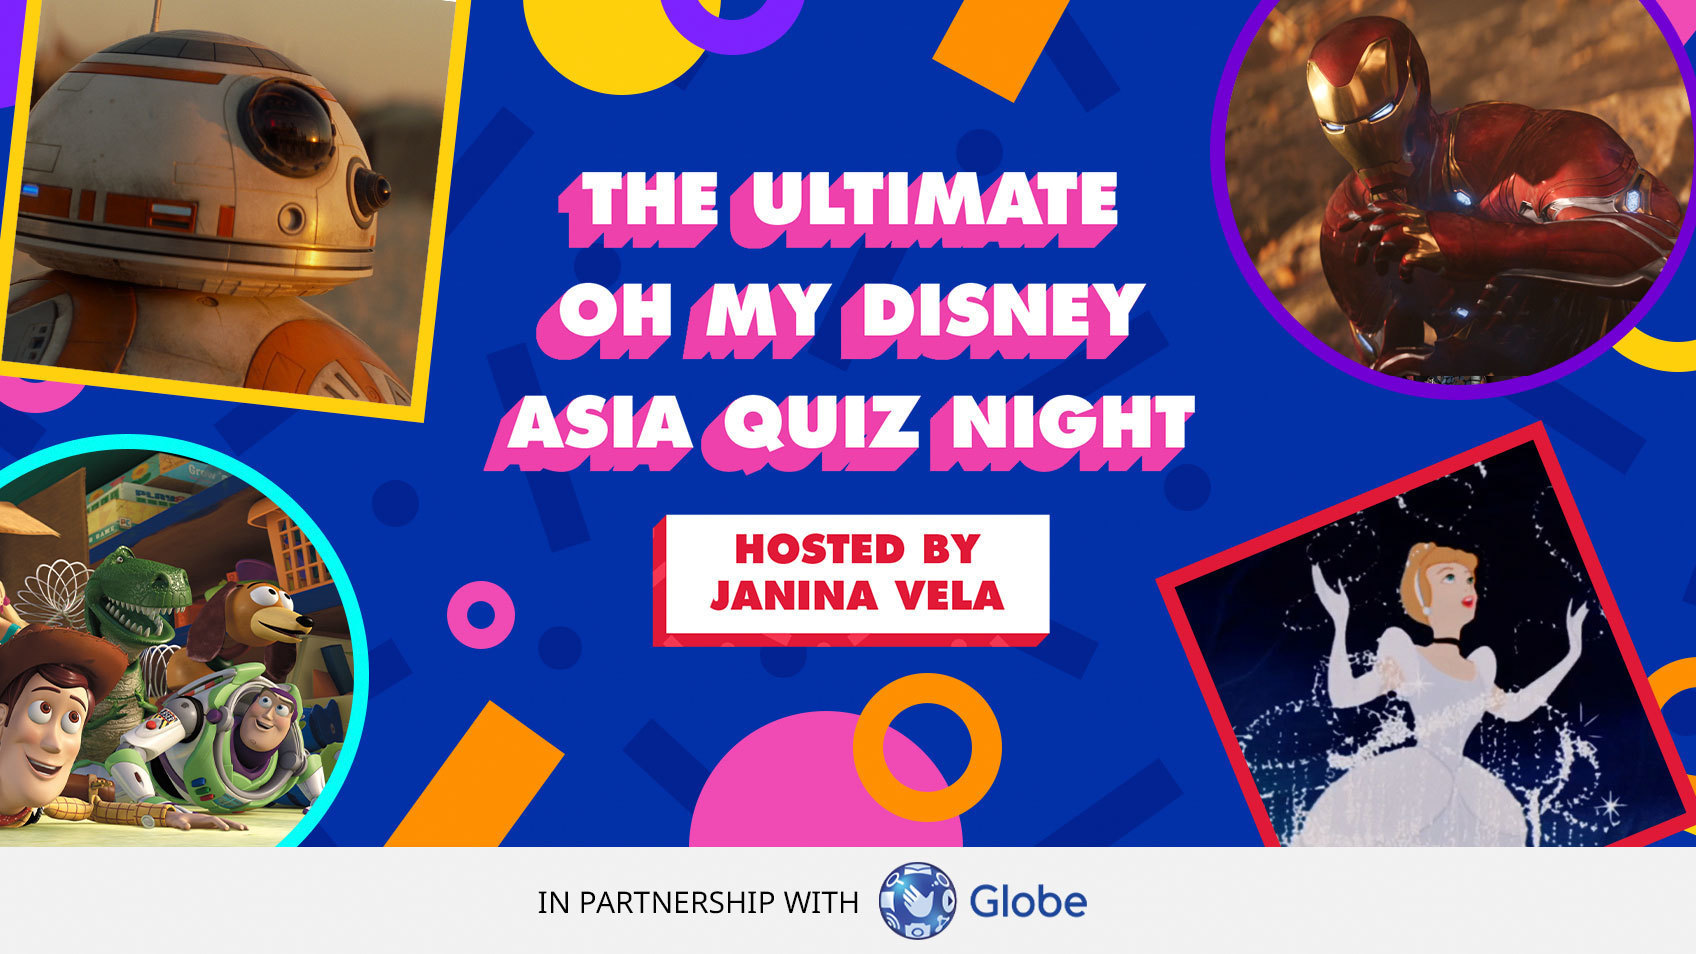 Are You Ready For The Ultimate Oh My Disney Asia Quiz Night?